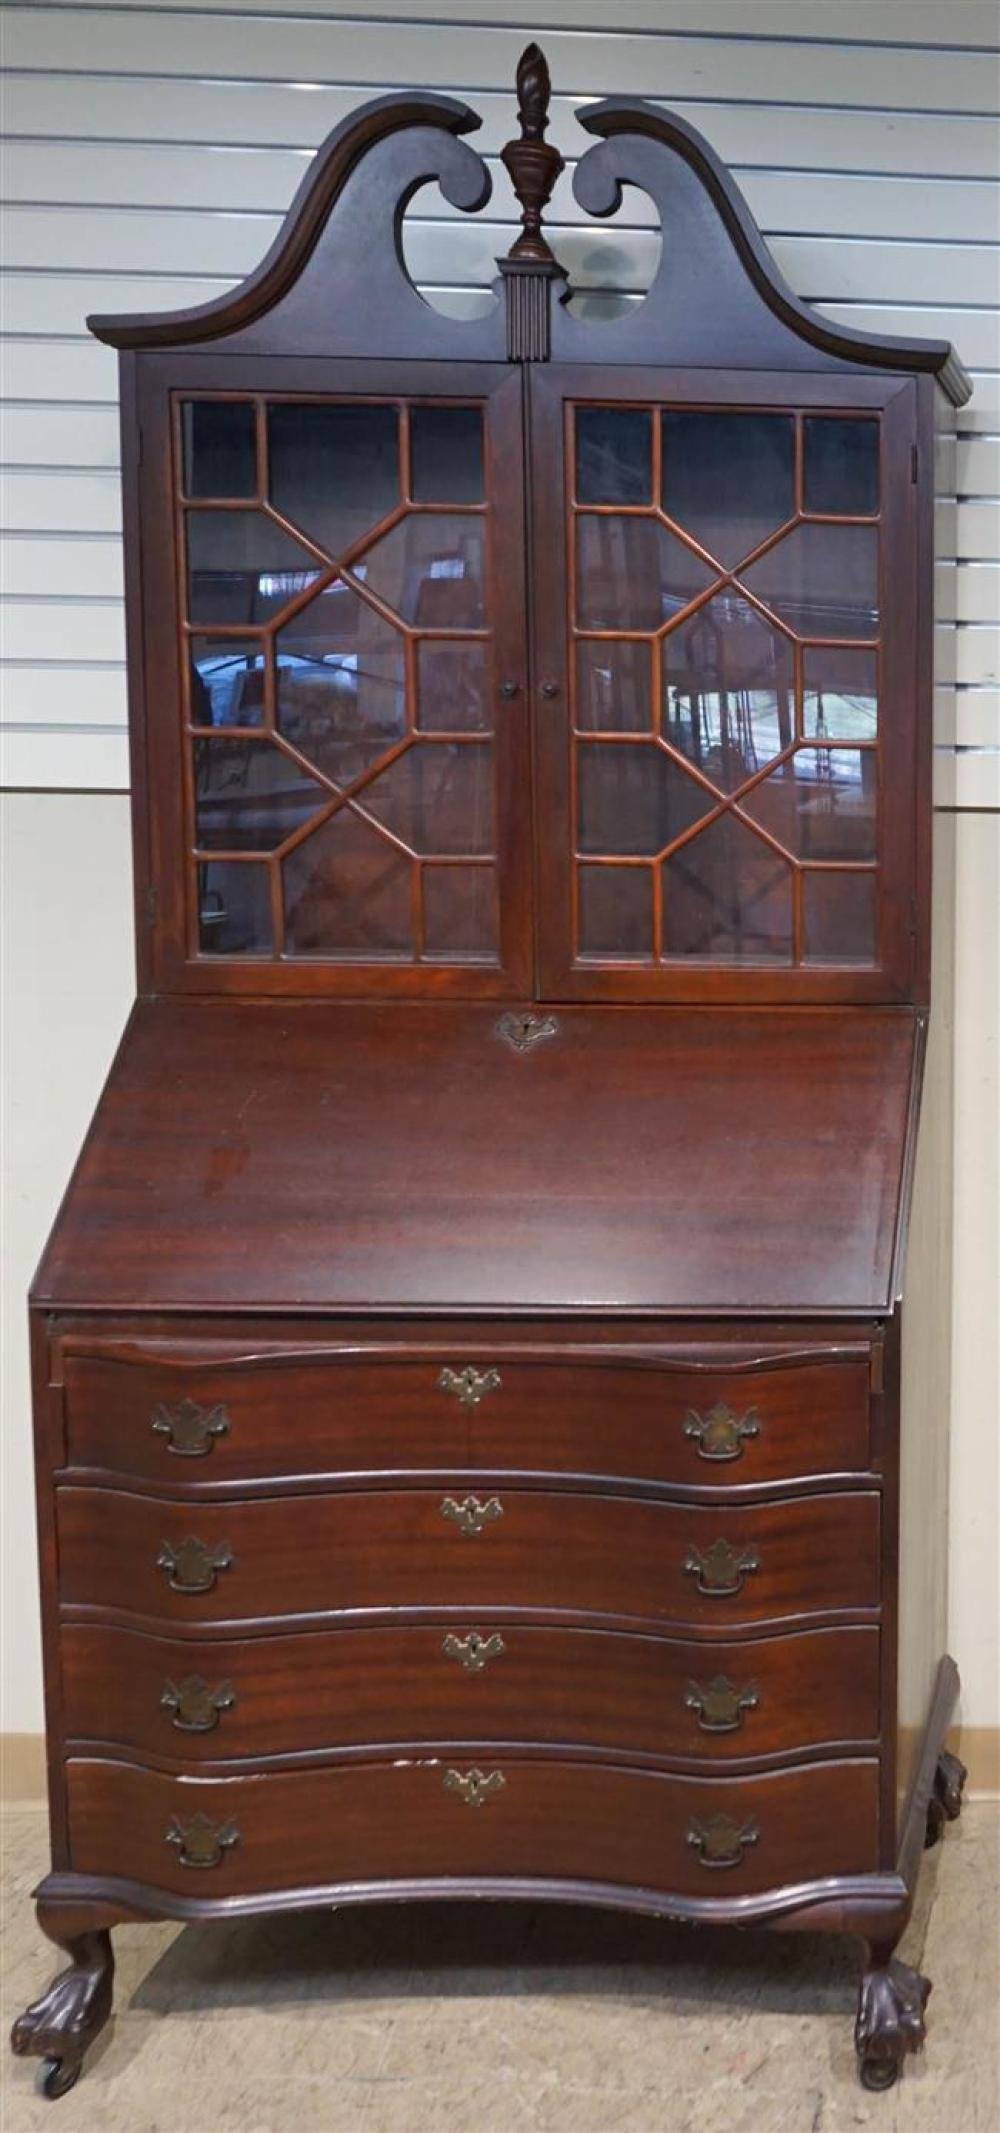 Chippendale Style Mahogany Slant-Front Secretary Bookcase, H: 83 in, W: 34-3/4 in, D: 17 in